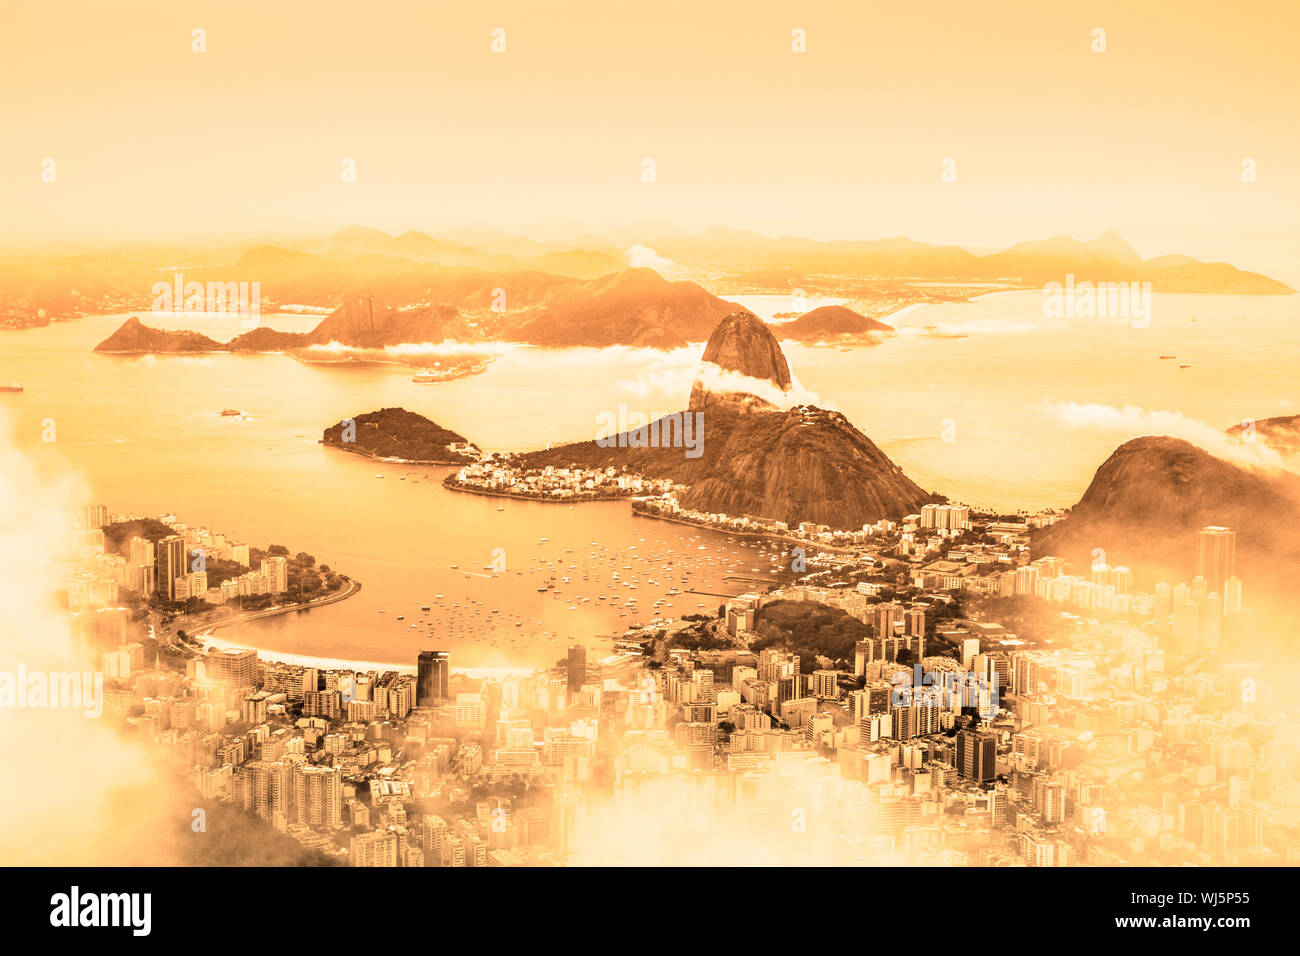 Rio de Janeiro, Brazil. Suggar Loaf and  Botafogo beach viewed from Corcovado at sunrise. Stock Photo